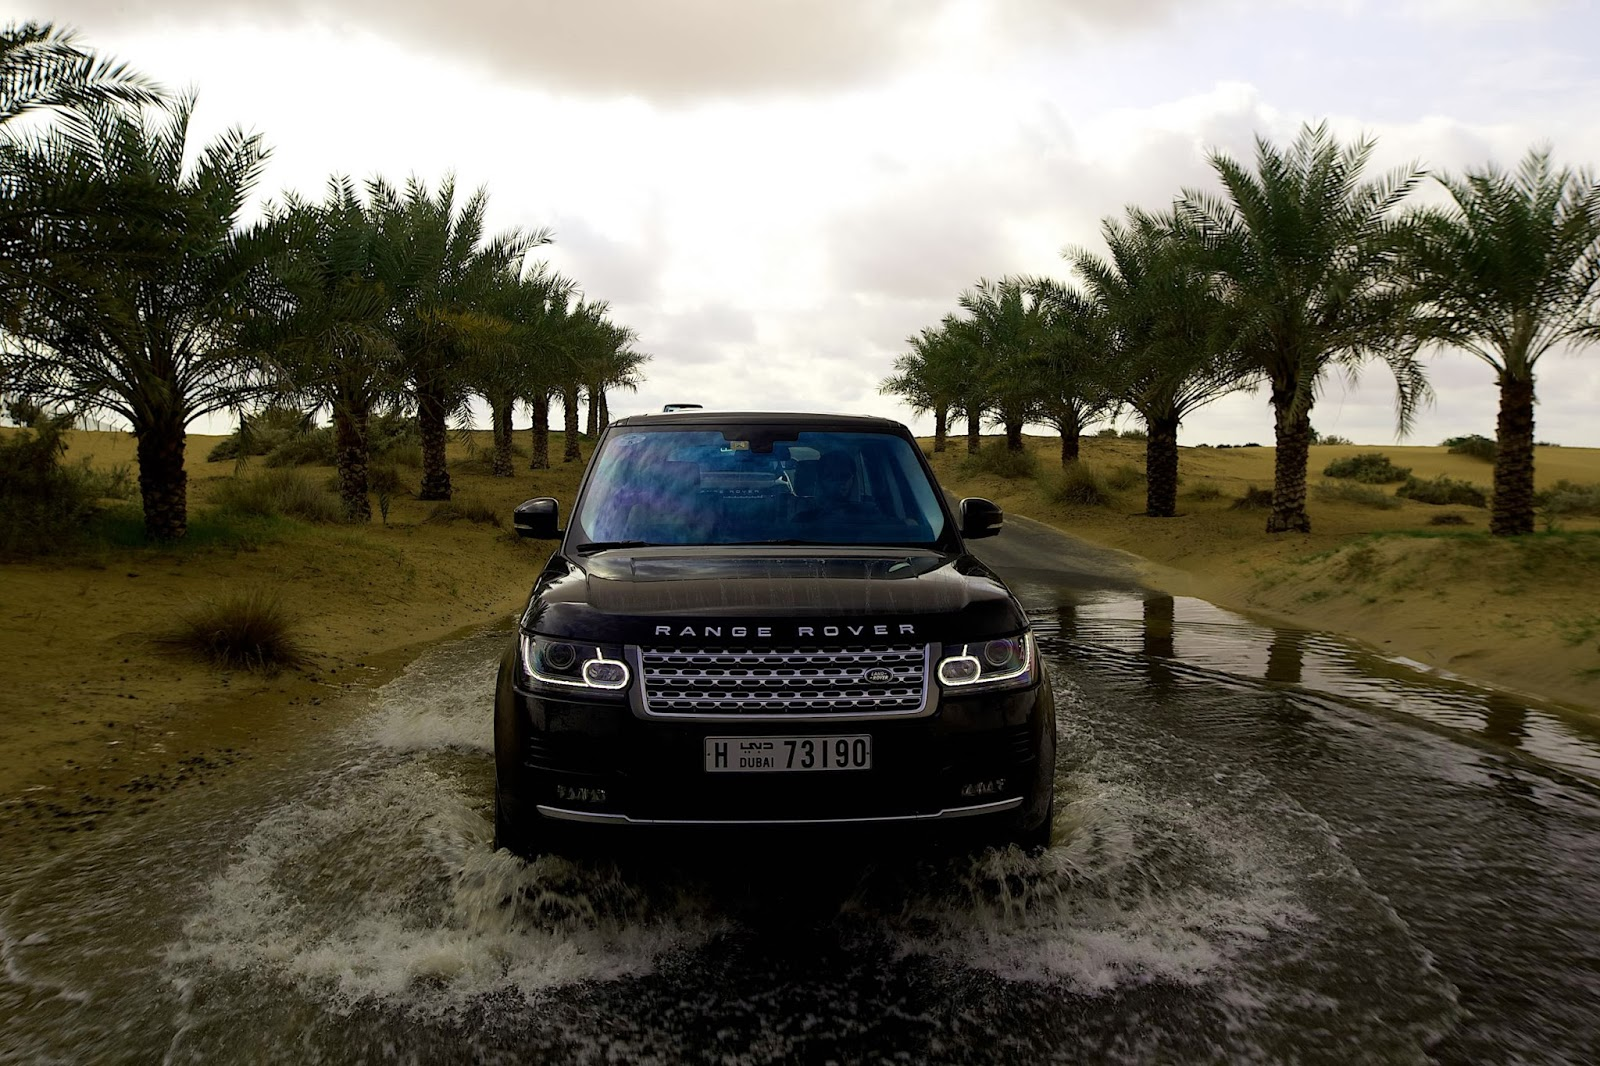 2013-Range-Rover-Vogue-Supercharged-Front